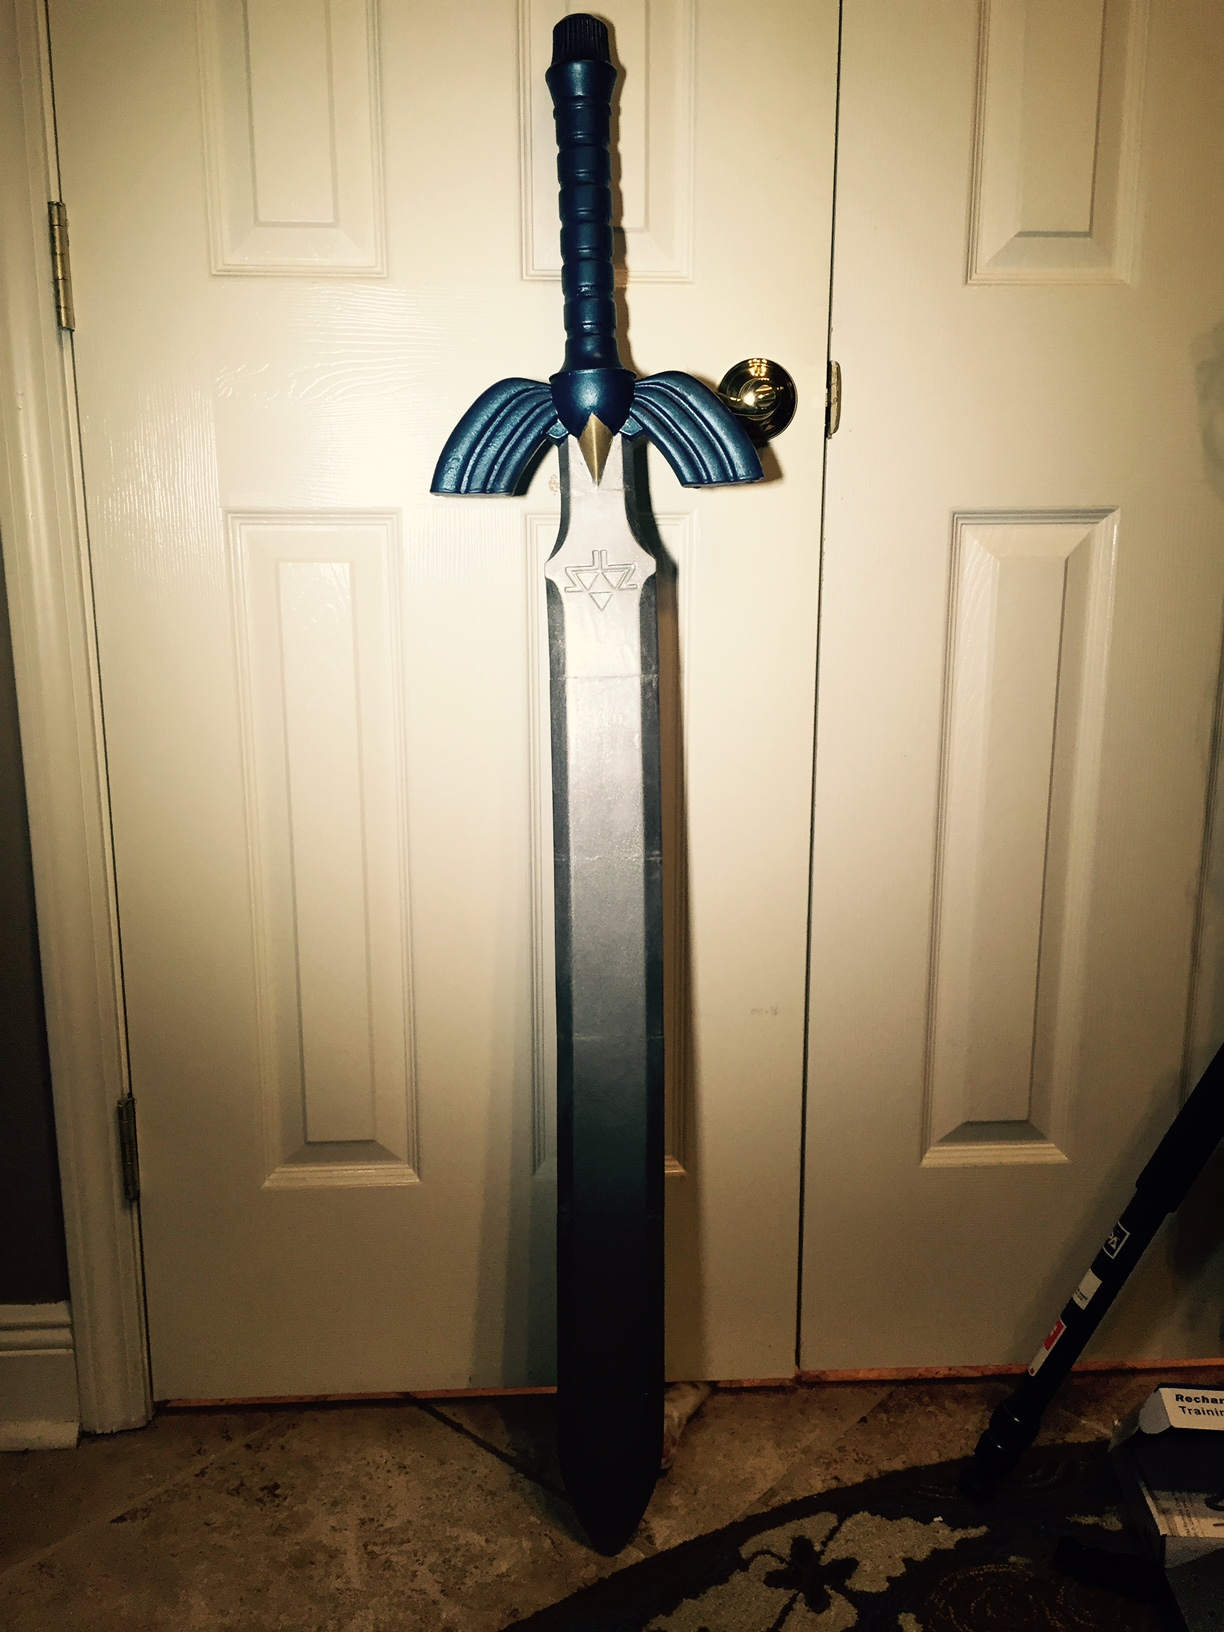 Picture of print of Zelda Master Sword This print has been uploaded by Ahmed Jaber